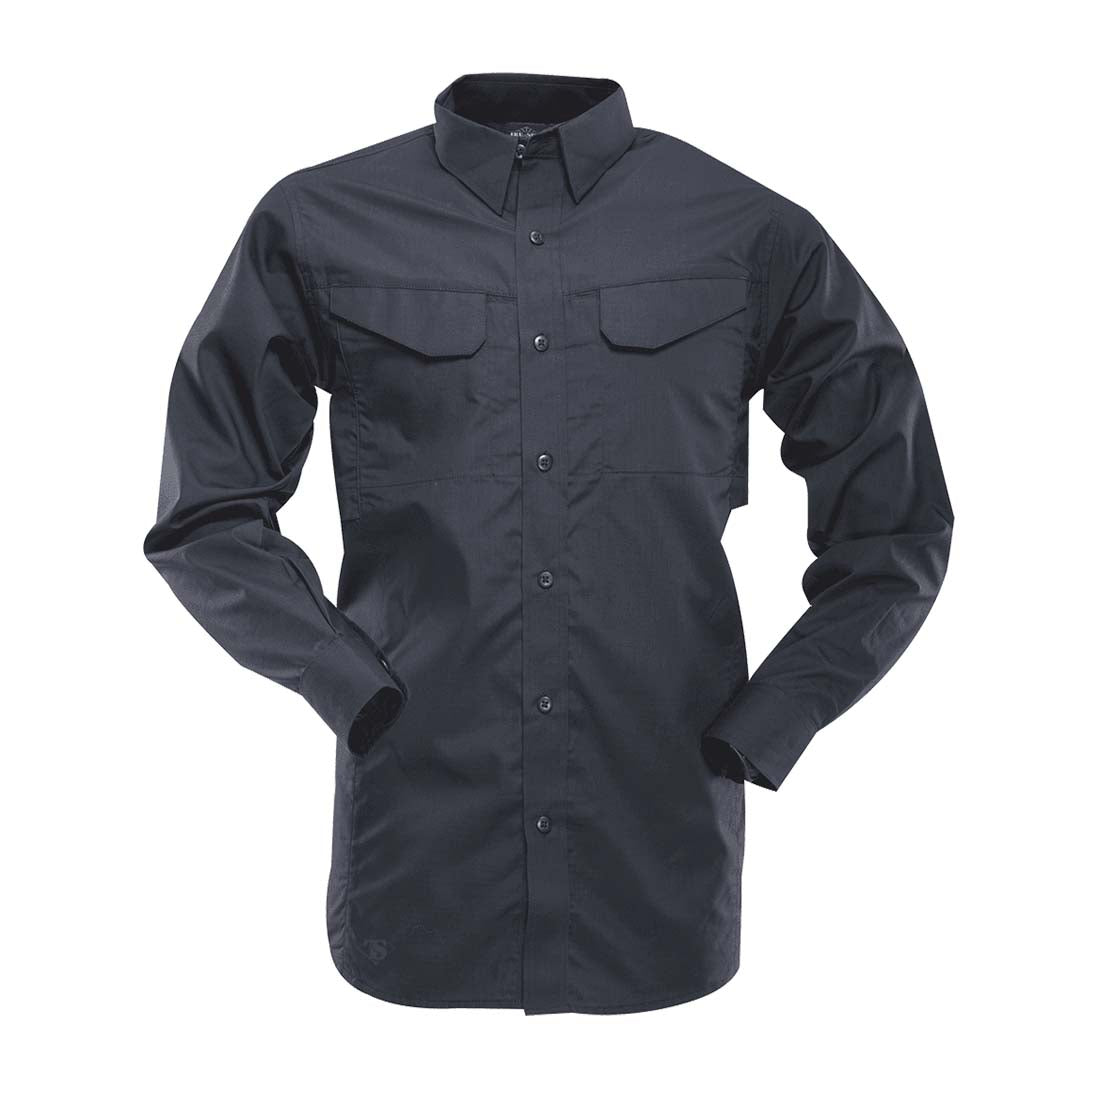 Tru-Spec 1103 Navy Men's Ultralight Long Sleeve Field Shirt